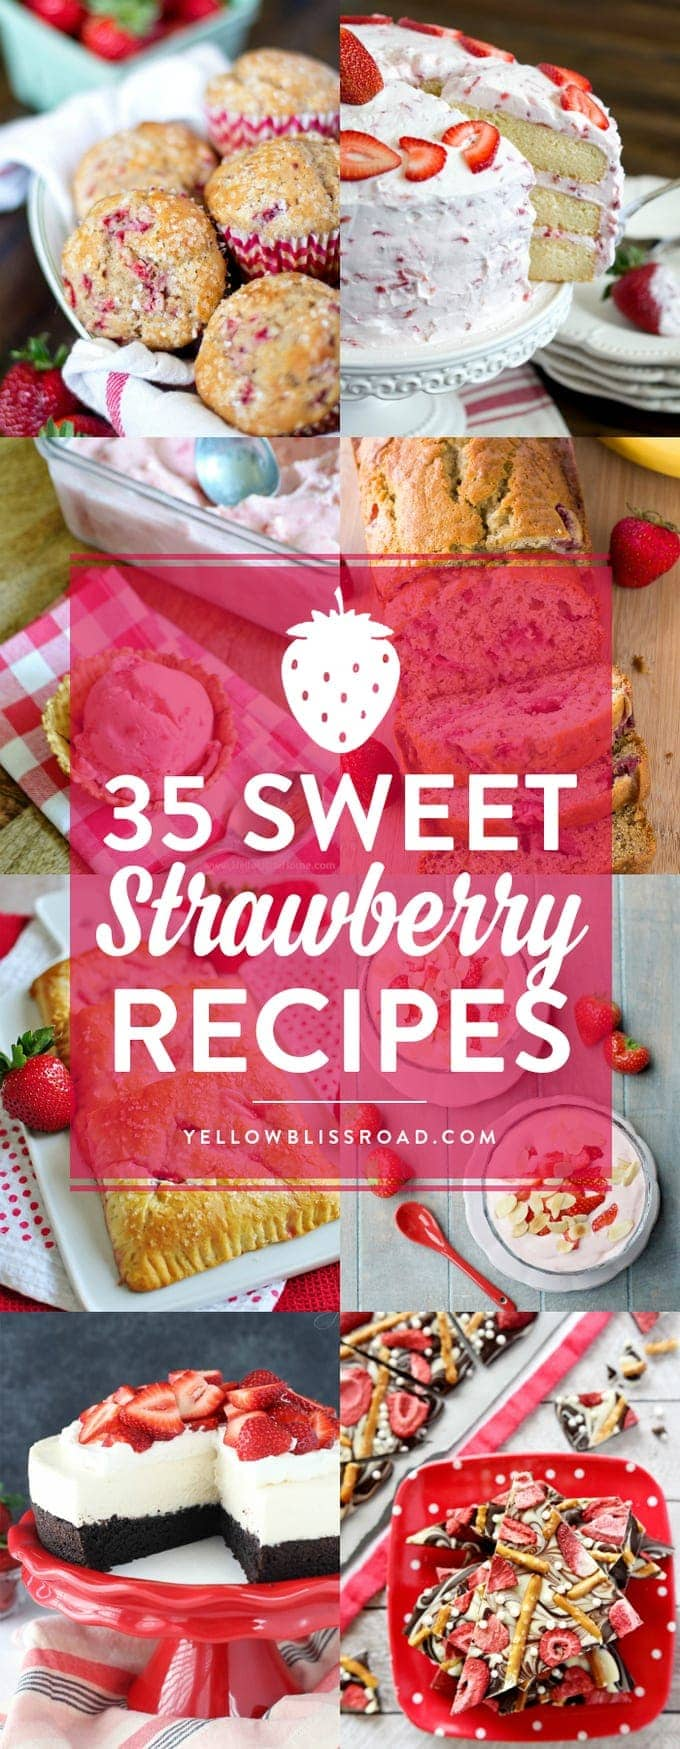 35 Sweet Strawberry Recipes